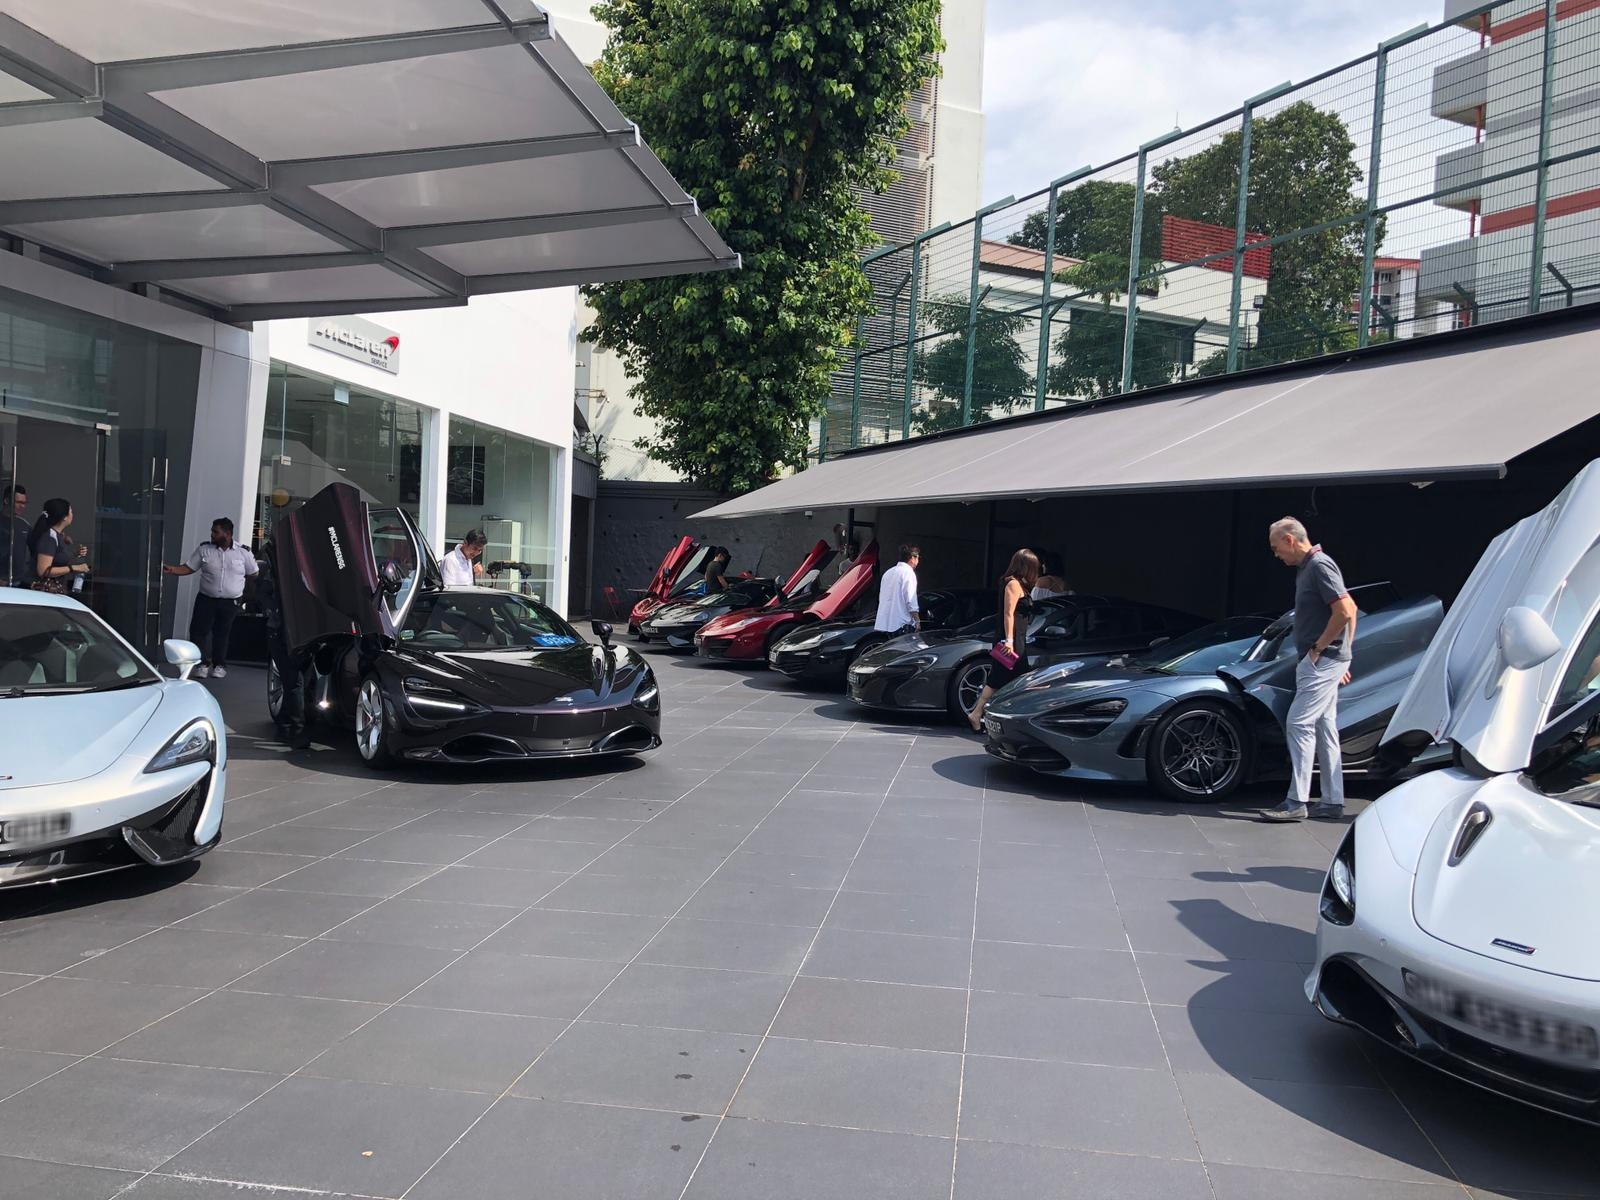 The McLaren owners getting ready to set out in a convoy from the McLaren Showroom